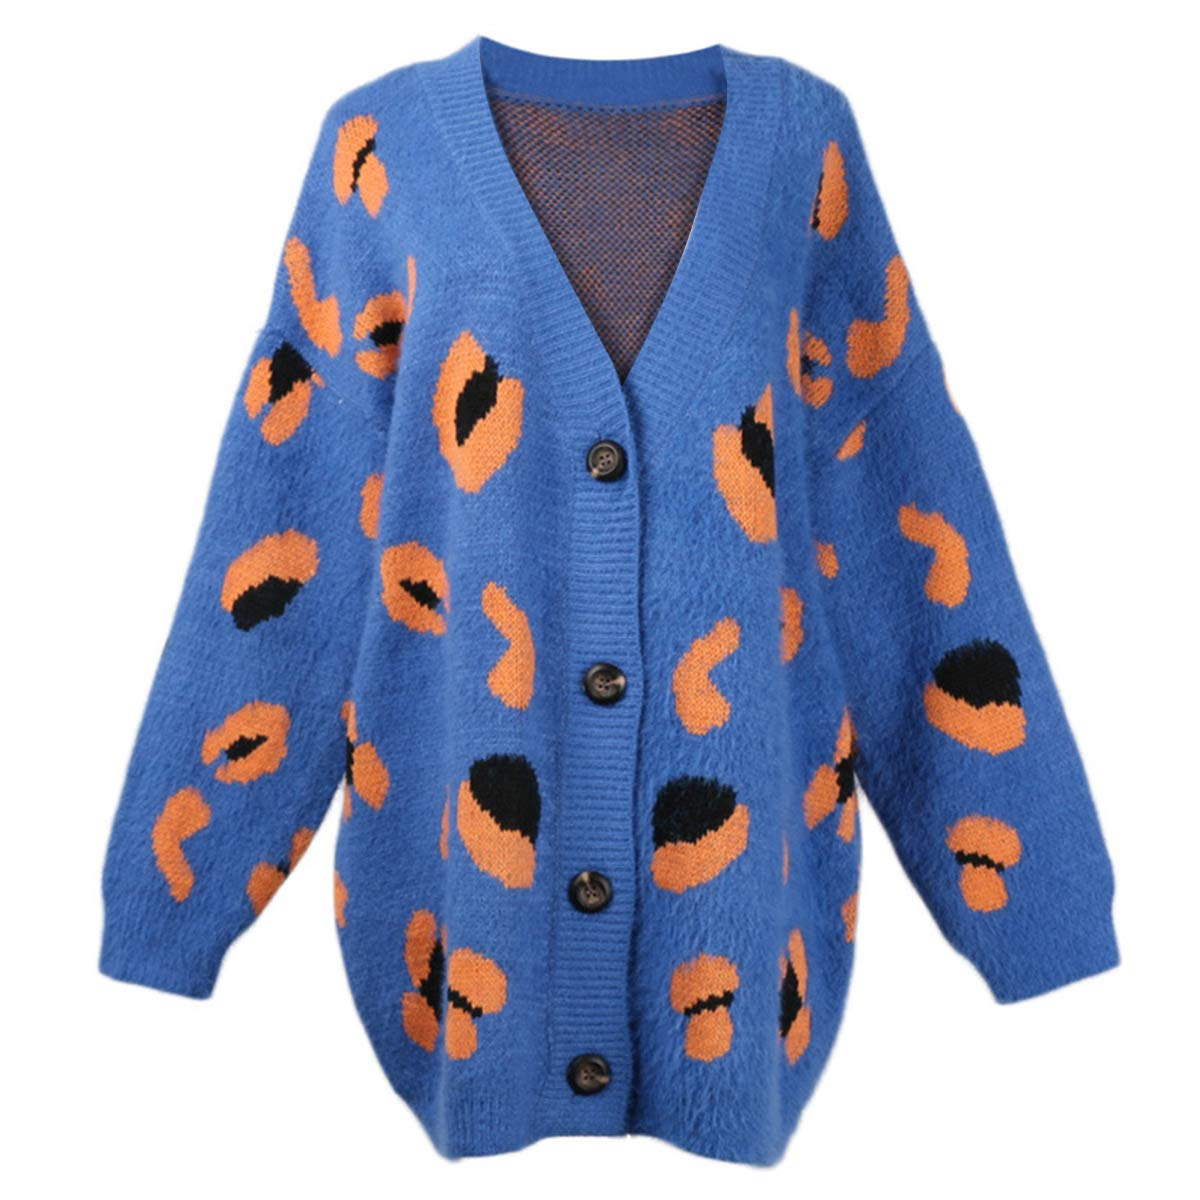 bluee Leopard Print V Neck Button Sweater Coat Women Knit Long Sleeve Cardigan